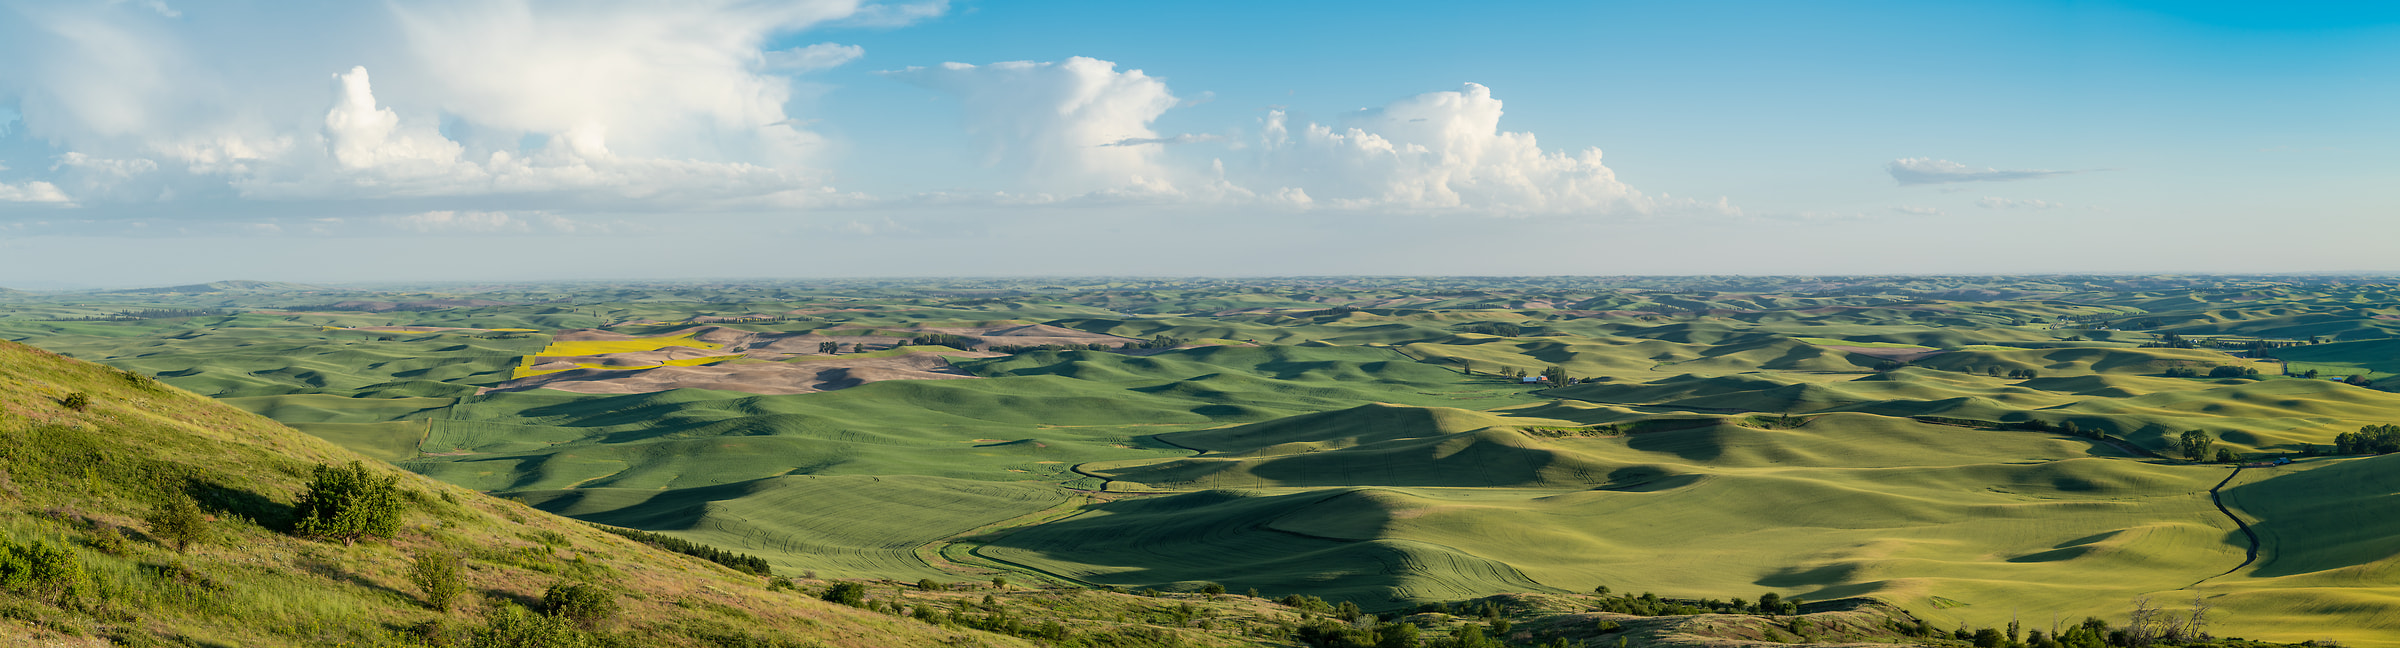 415 megapixels! A very high resolution, large-format VAST photo print of green rolling hills and a blue sky with clouds; landscape photograph created by Greg Probst in Steptoe Butte State Park, Washington